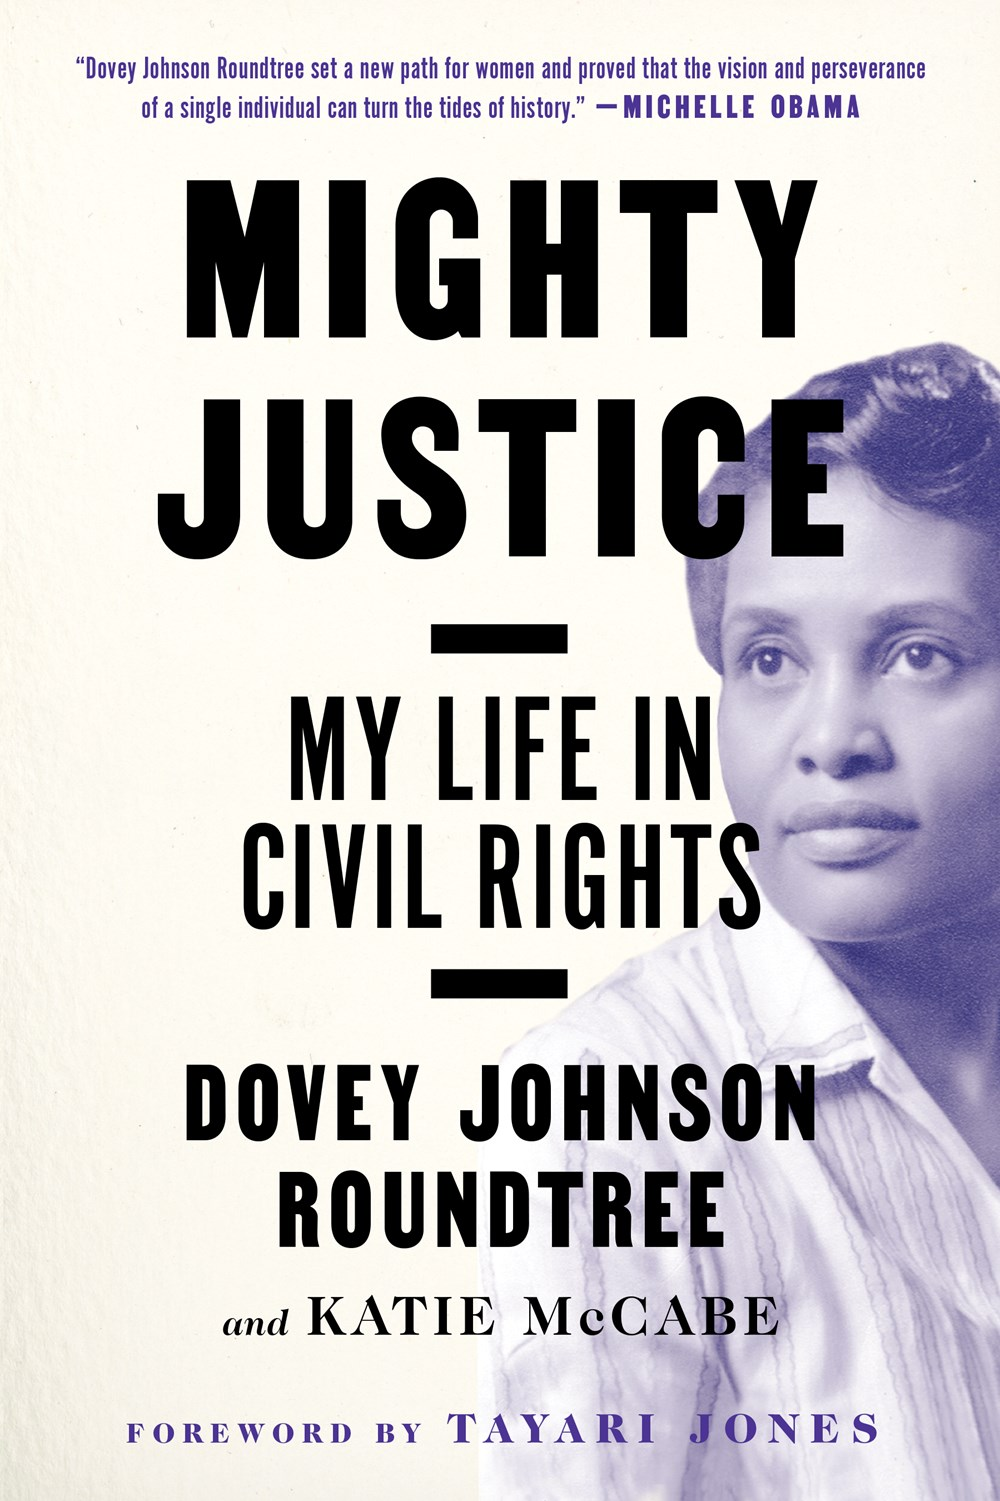 Image For Roundtree - Mighty Justice